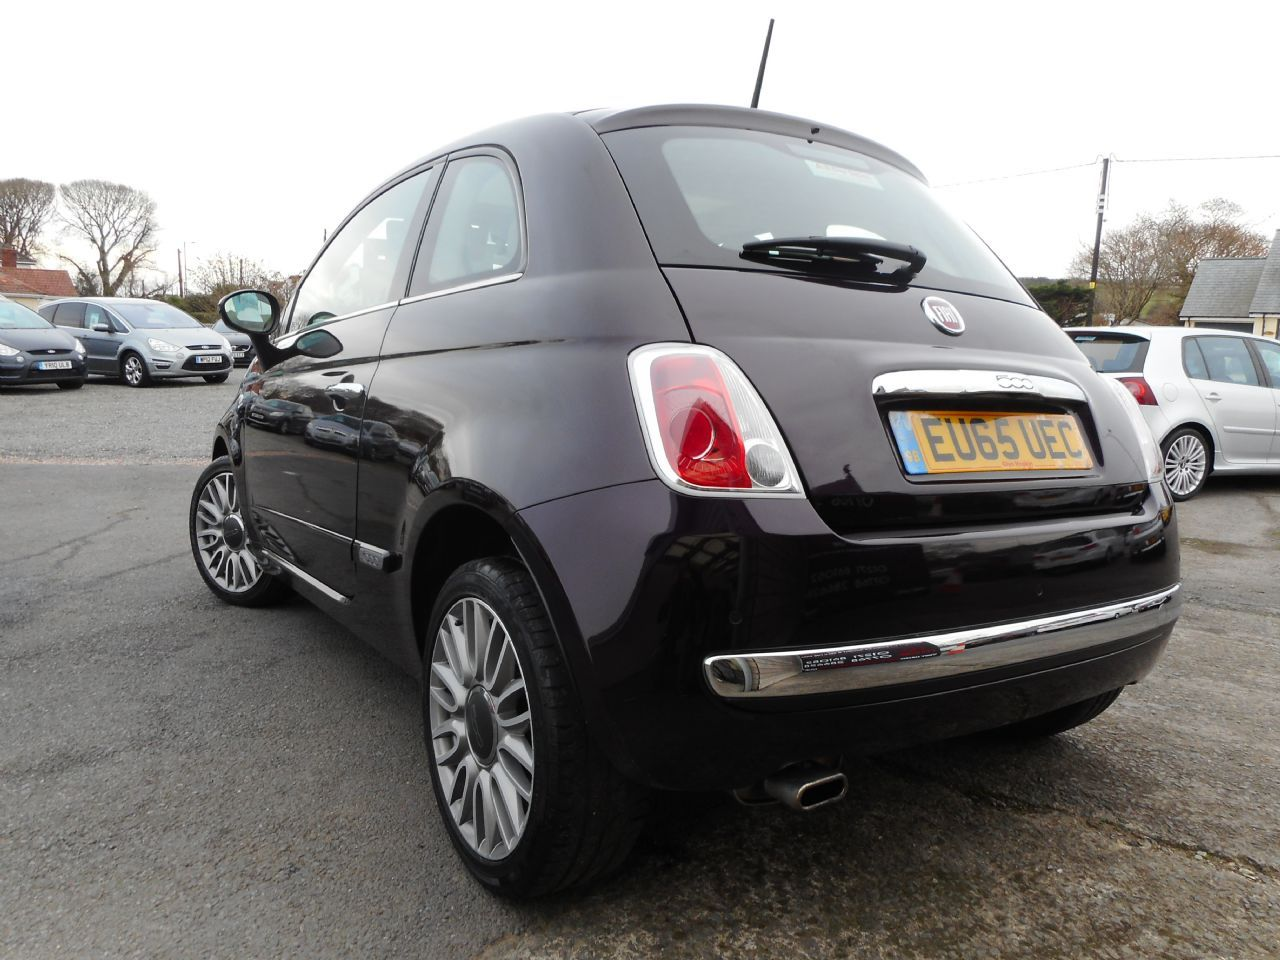 FIAT 500 1.2i Lounge S/S - Picture 3